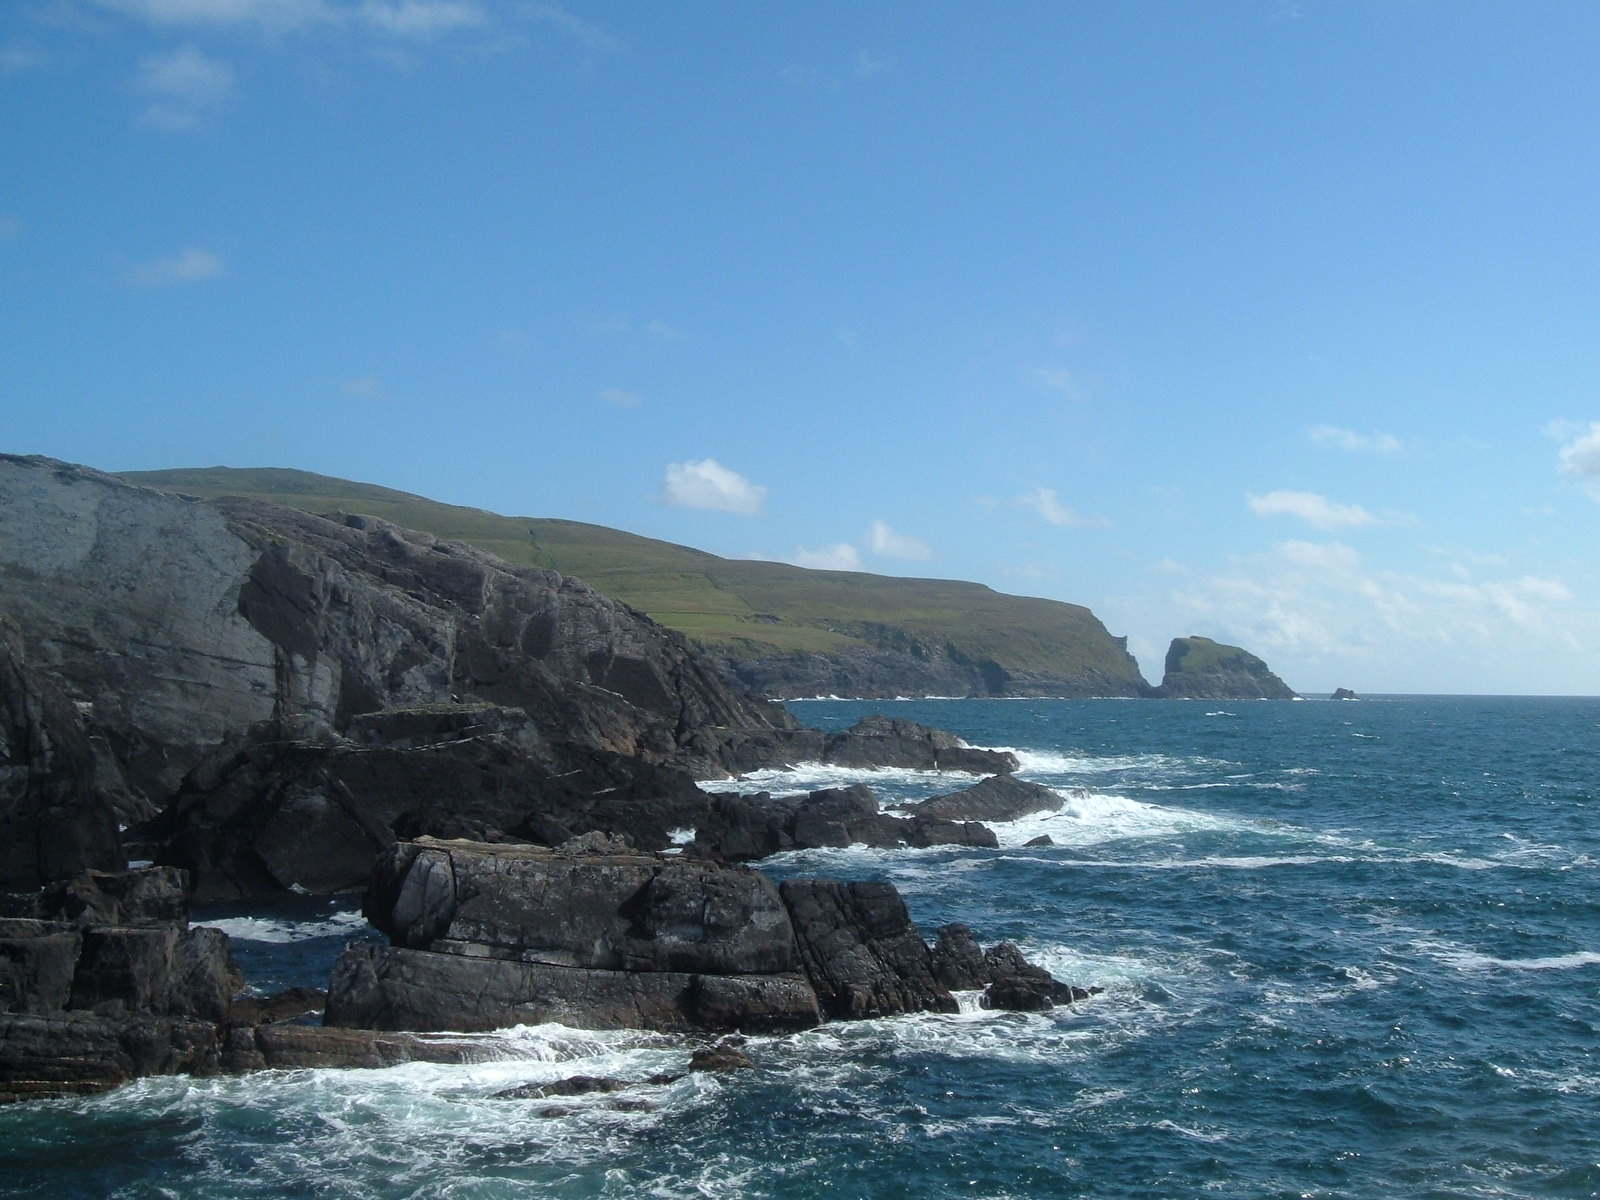 The Atlantic ocean and the grey rocks of the Mizen peninsula